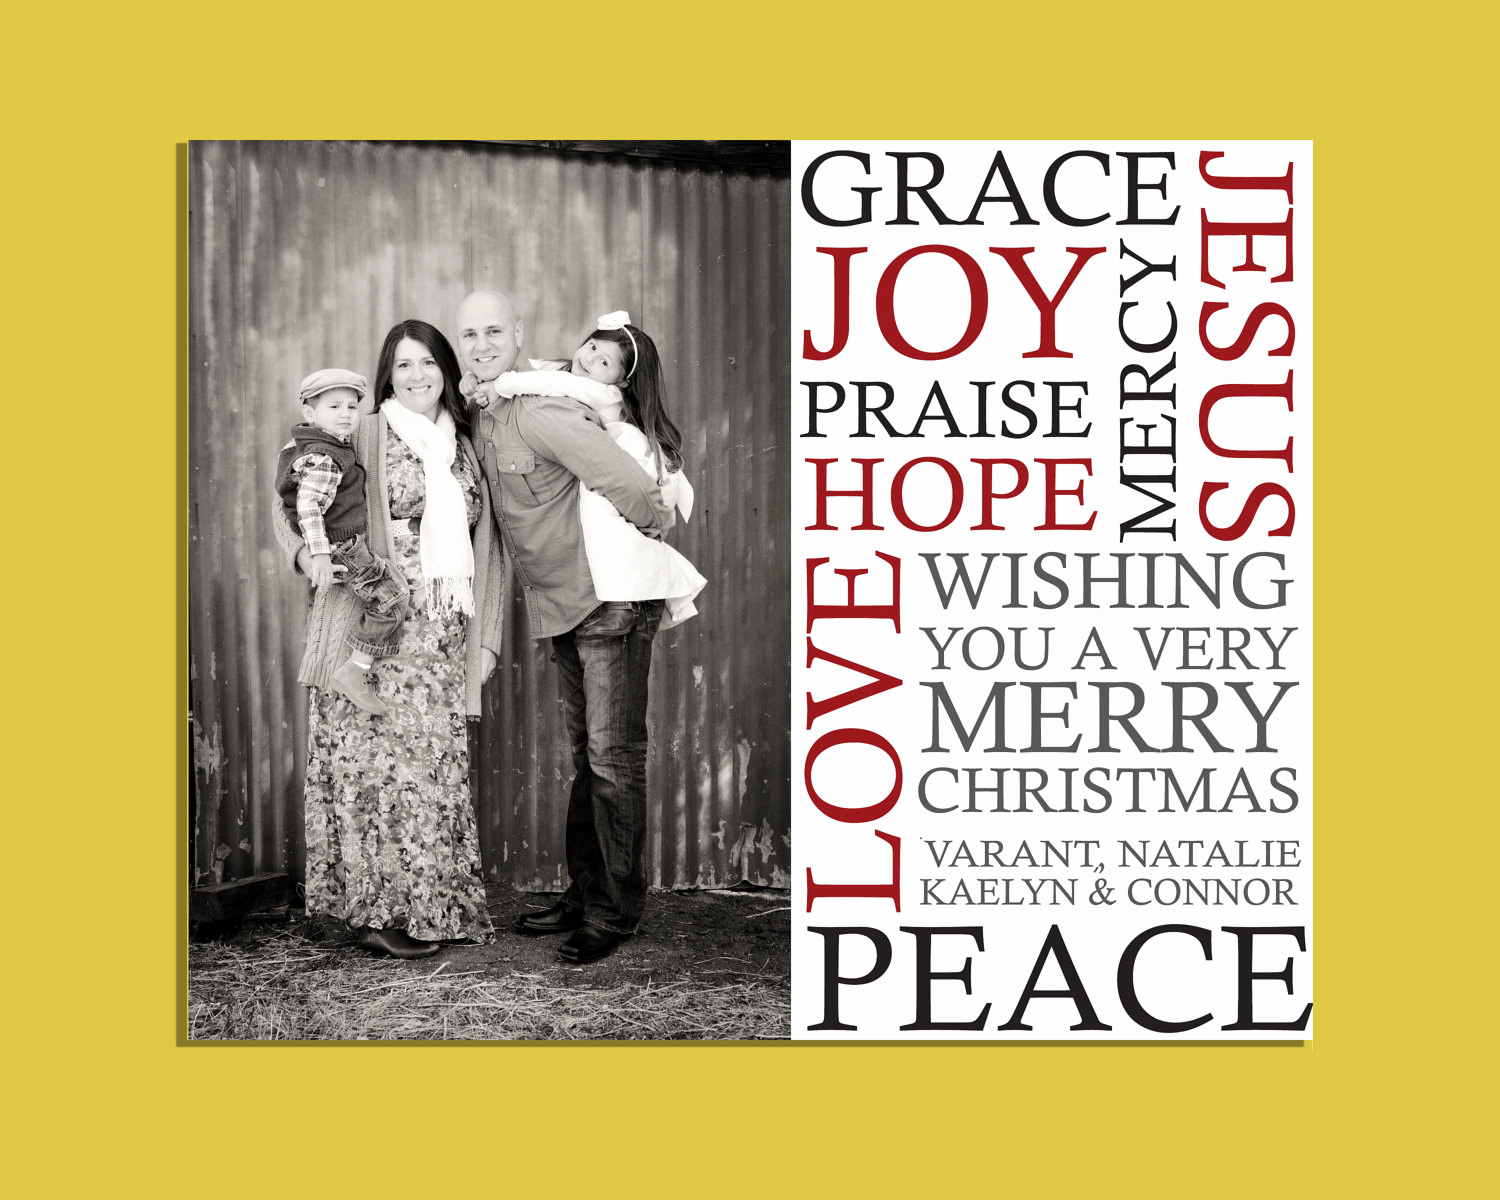 Christmas Card Templates for Photoshop Fresh 6x7 5 Subway Christmas Card Template Shop Sized for